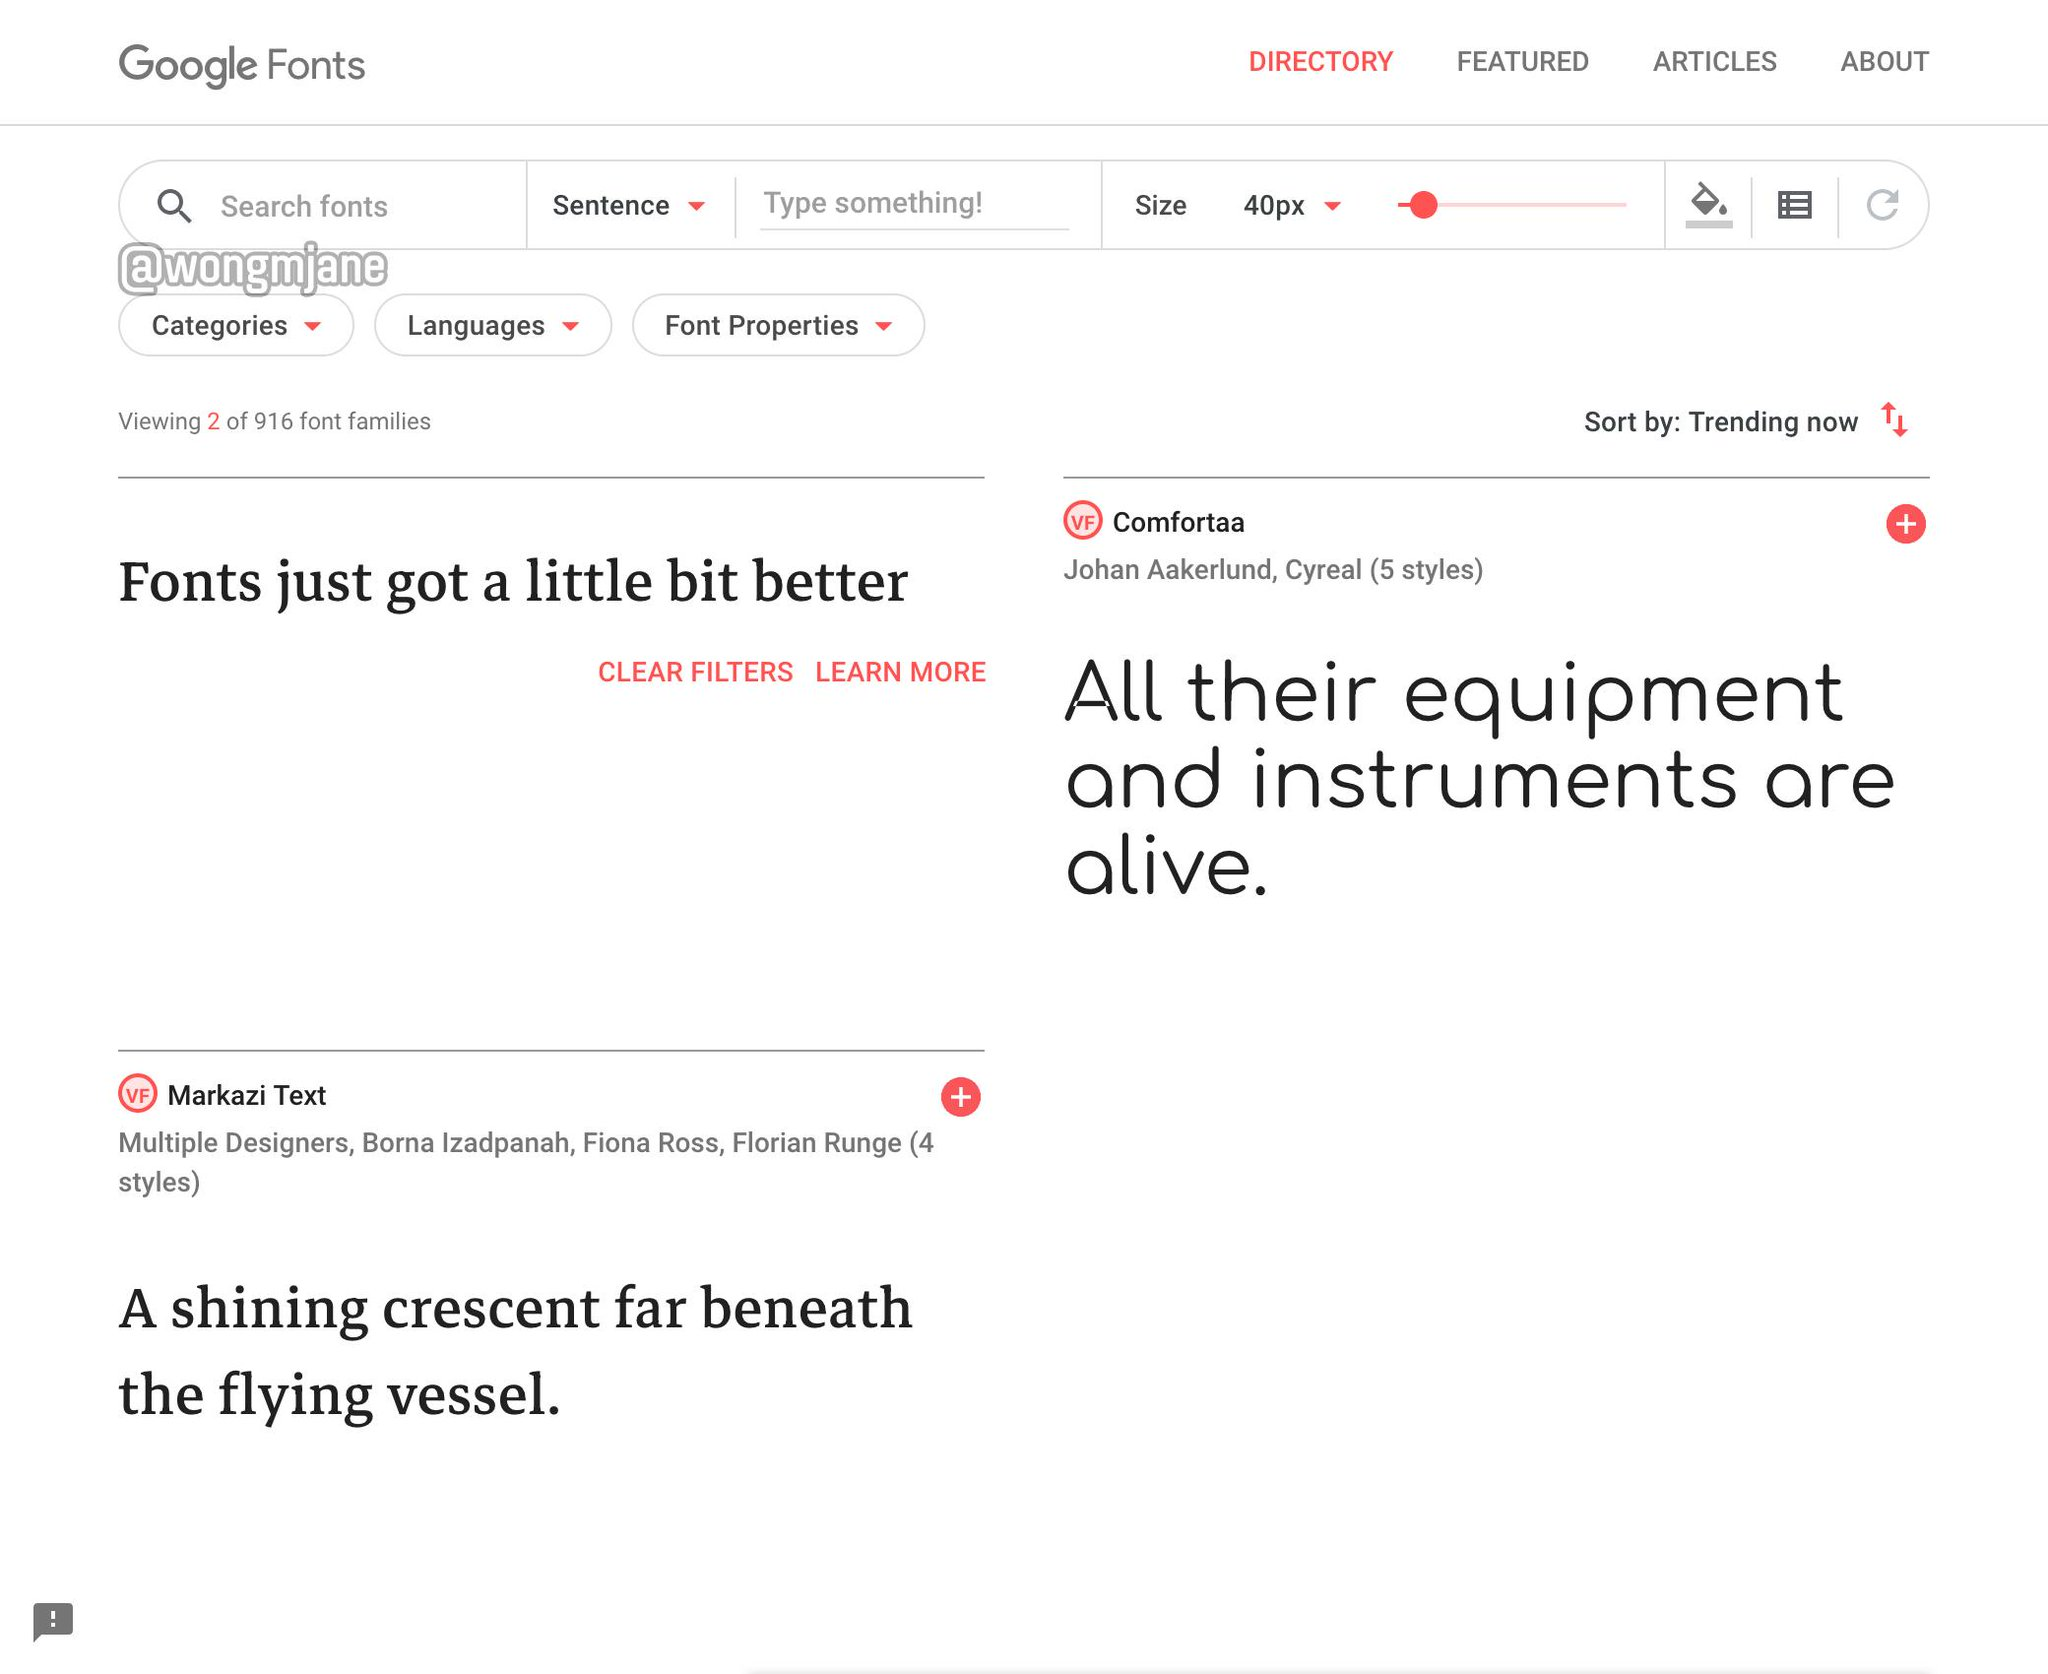 Google Fonts to ship variable fonts and redesigned UI https://t.co/s0wGk3wVEA